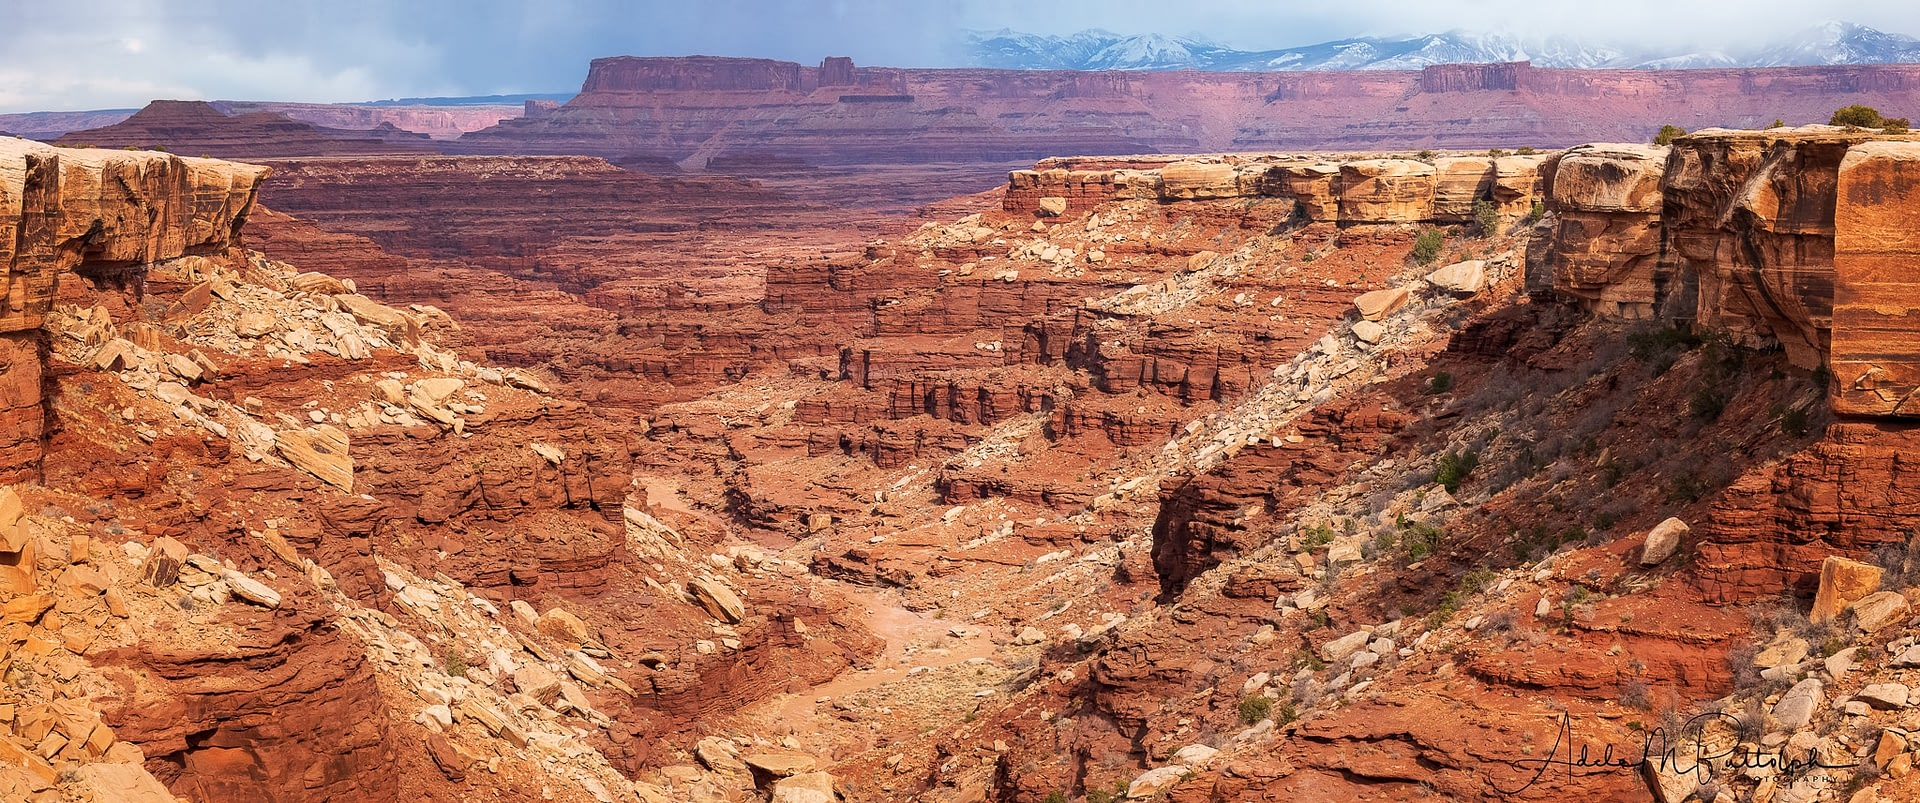 View into Canyonlands National Park from White Rim Road